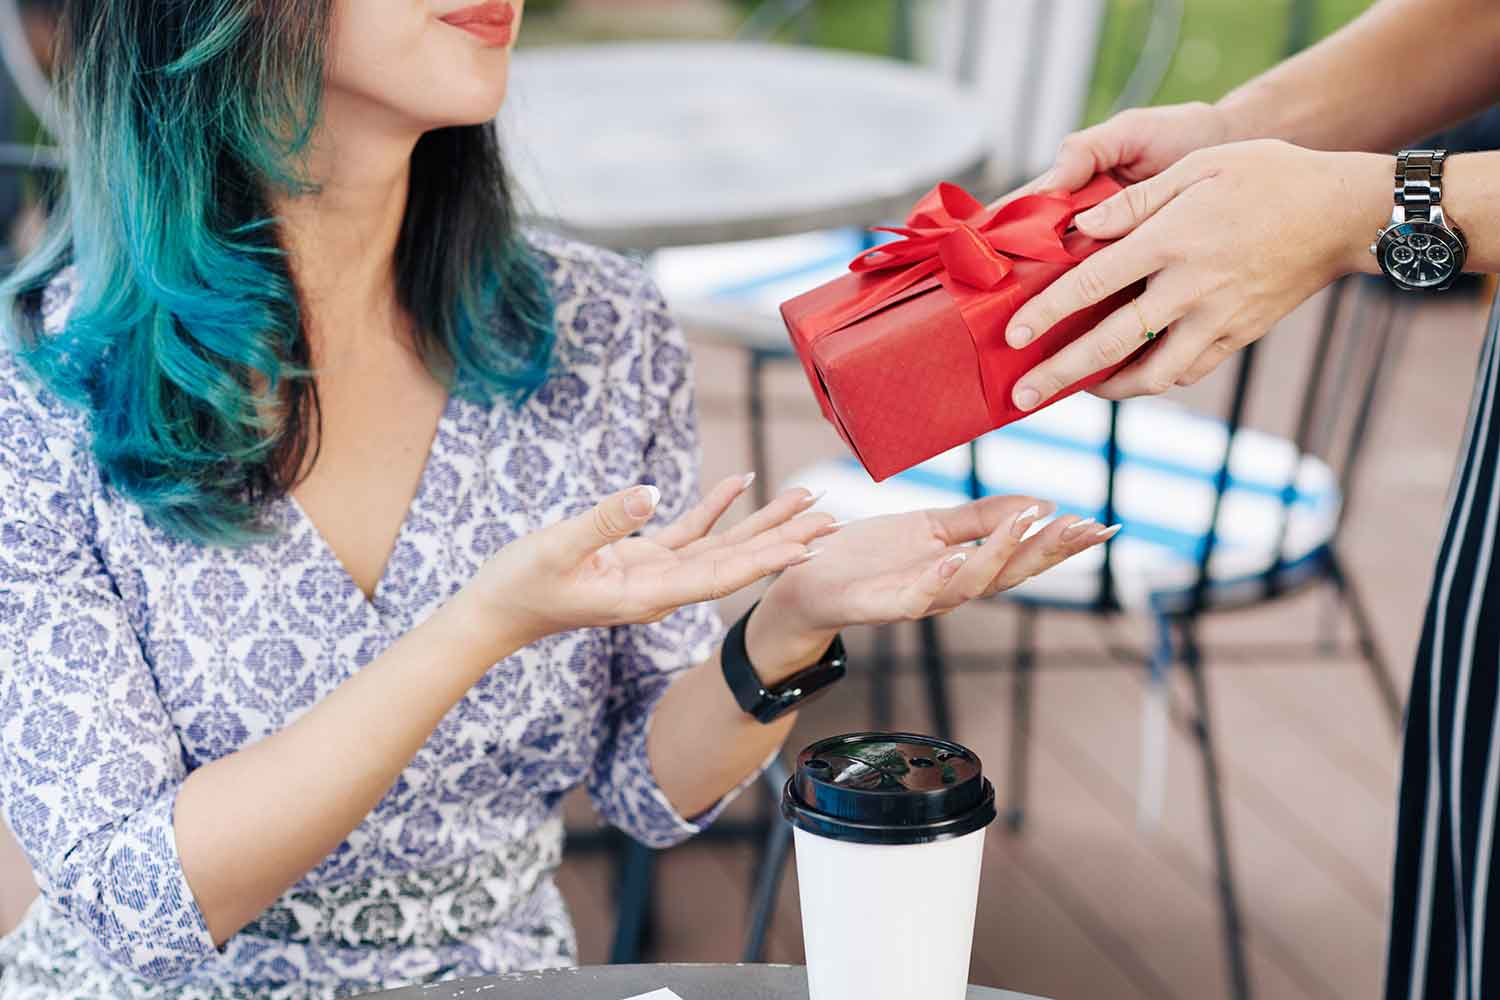 Young woman accepting gift from friend - here are awesome gifting ideas to consider.